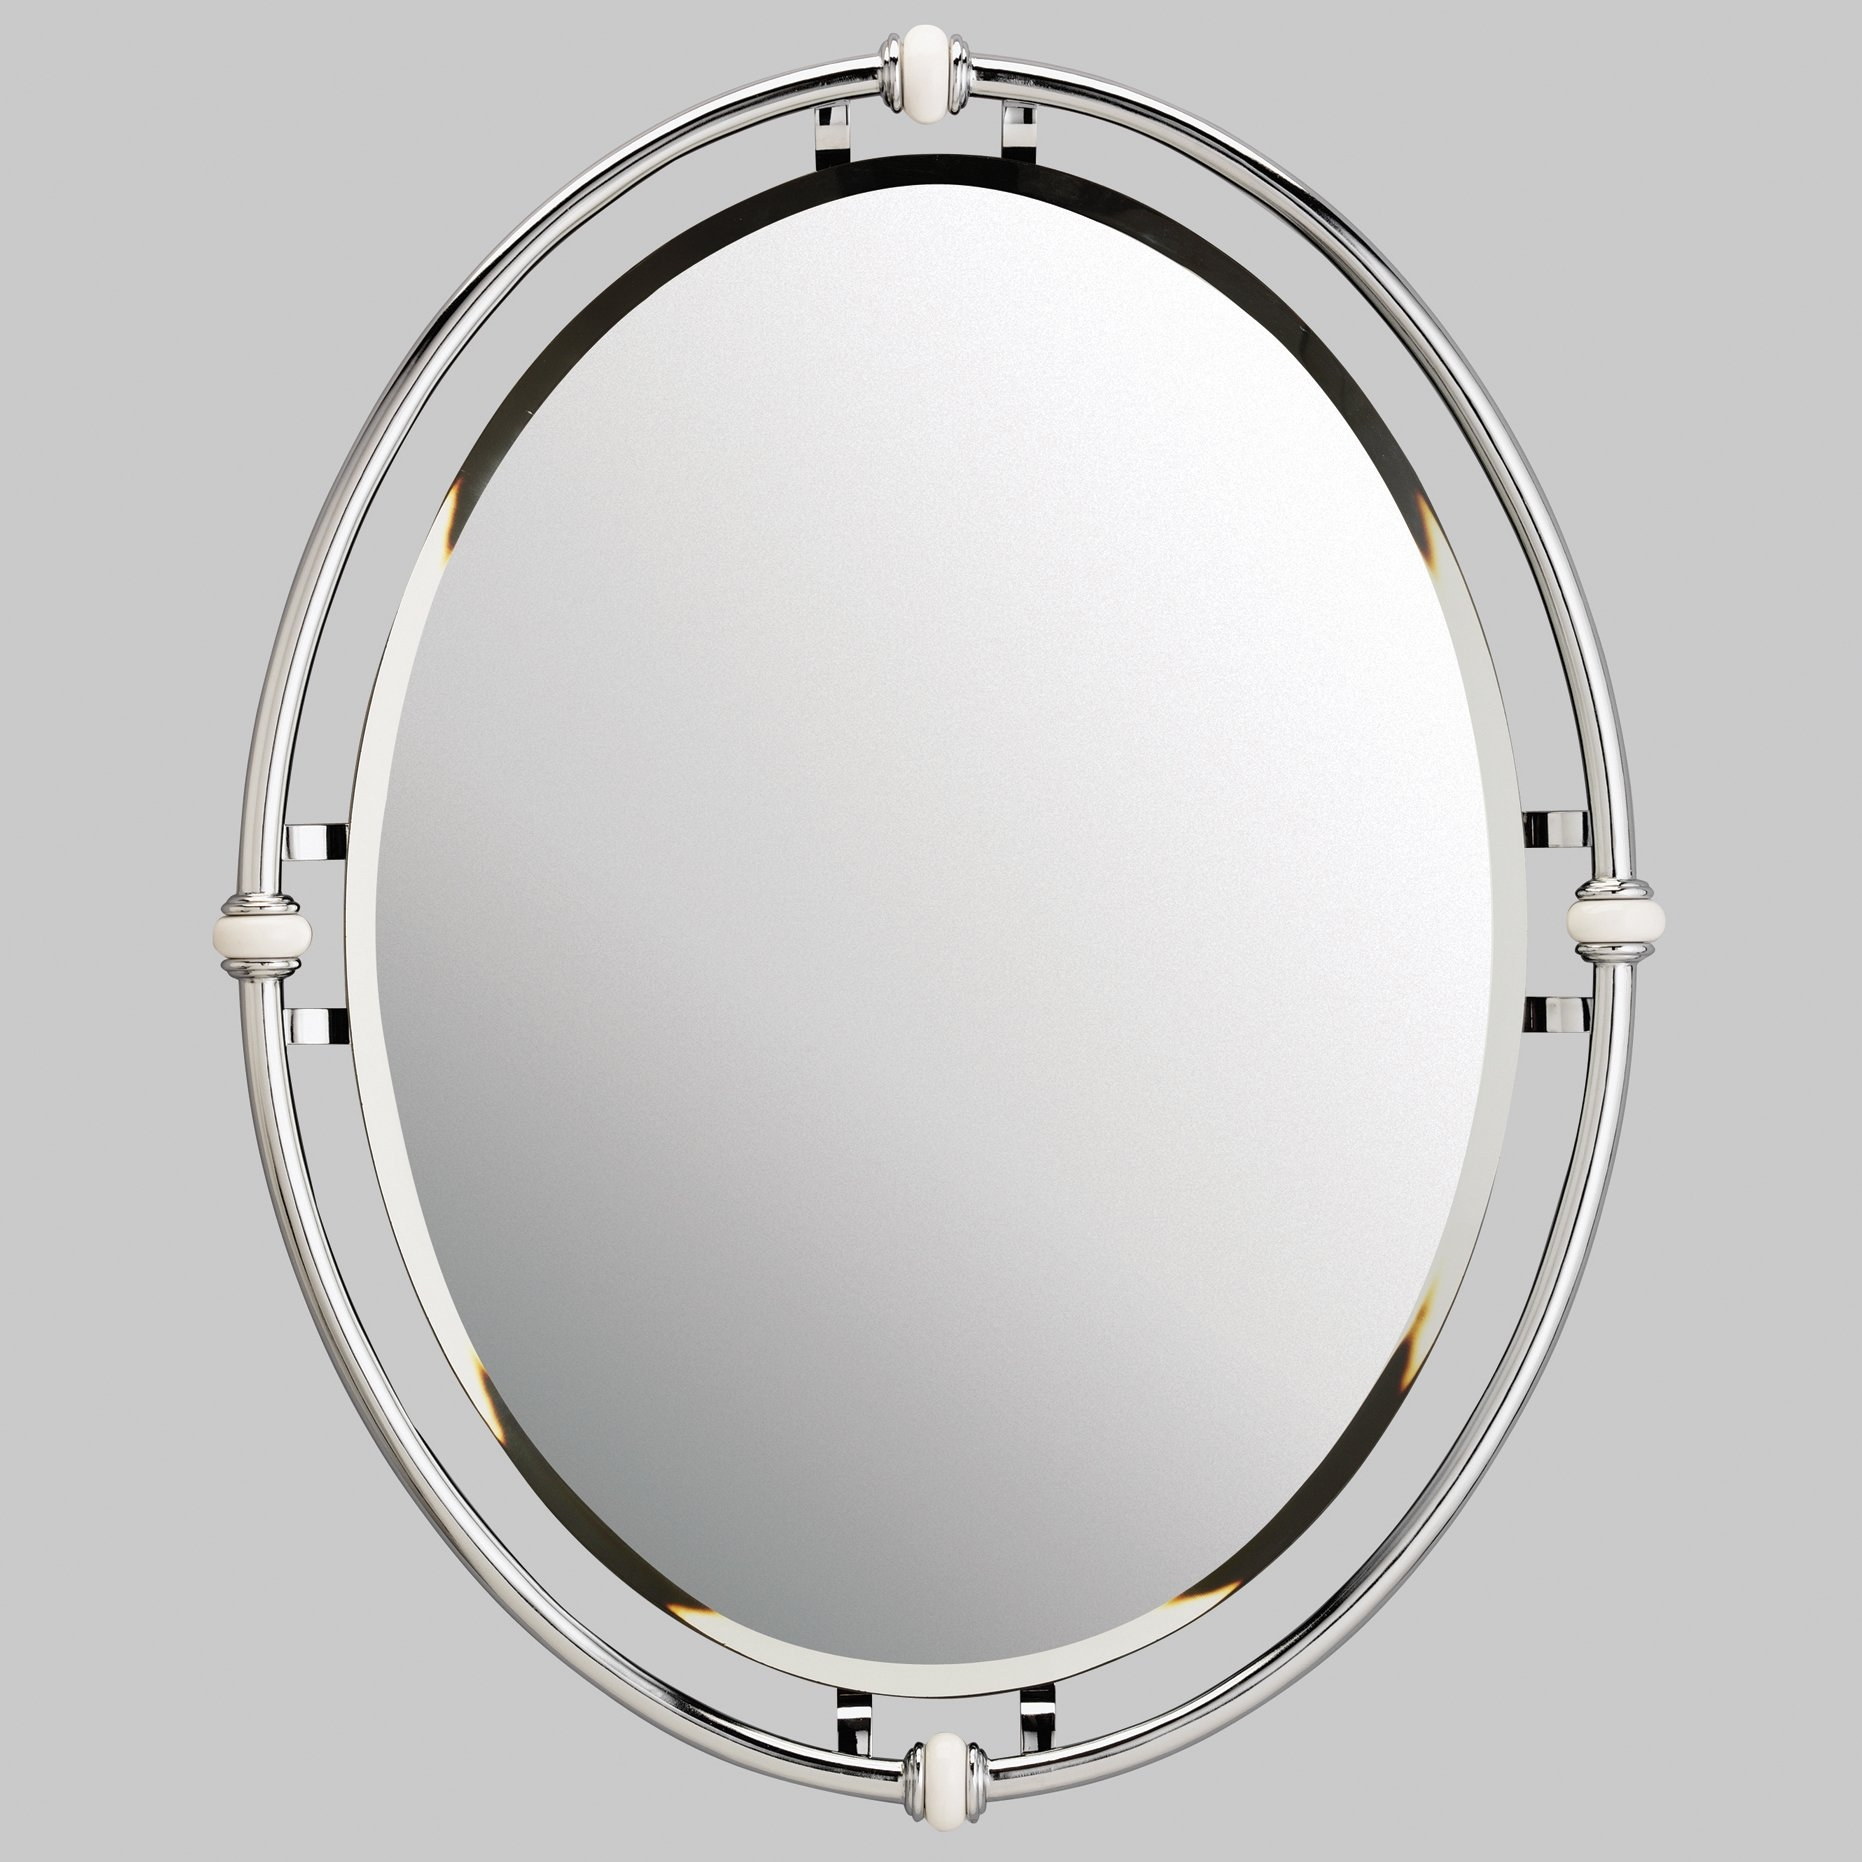 Kichler Oval Beveled Mirror Reviews Wayfair For Oval Bevelled Mirror (View 14 of 15)